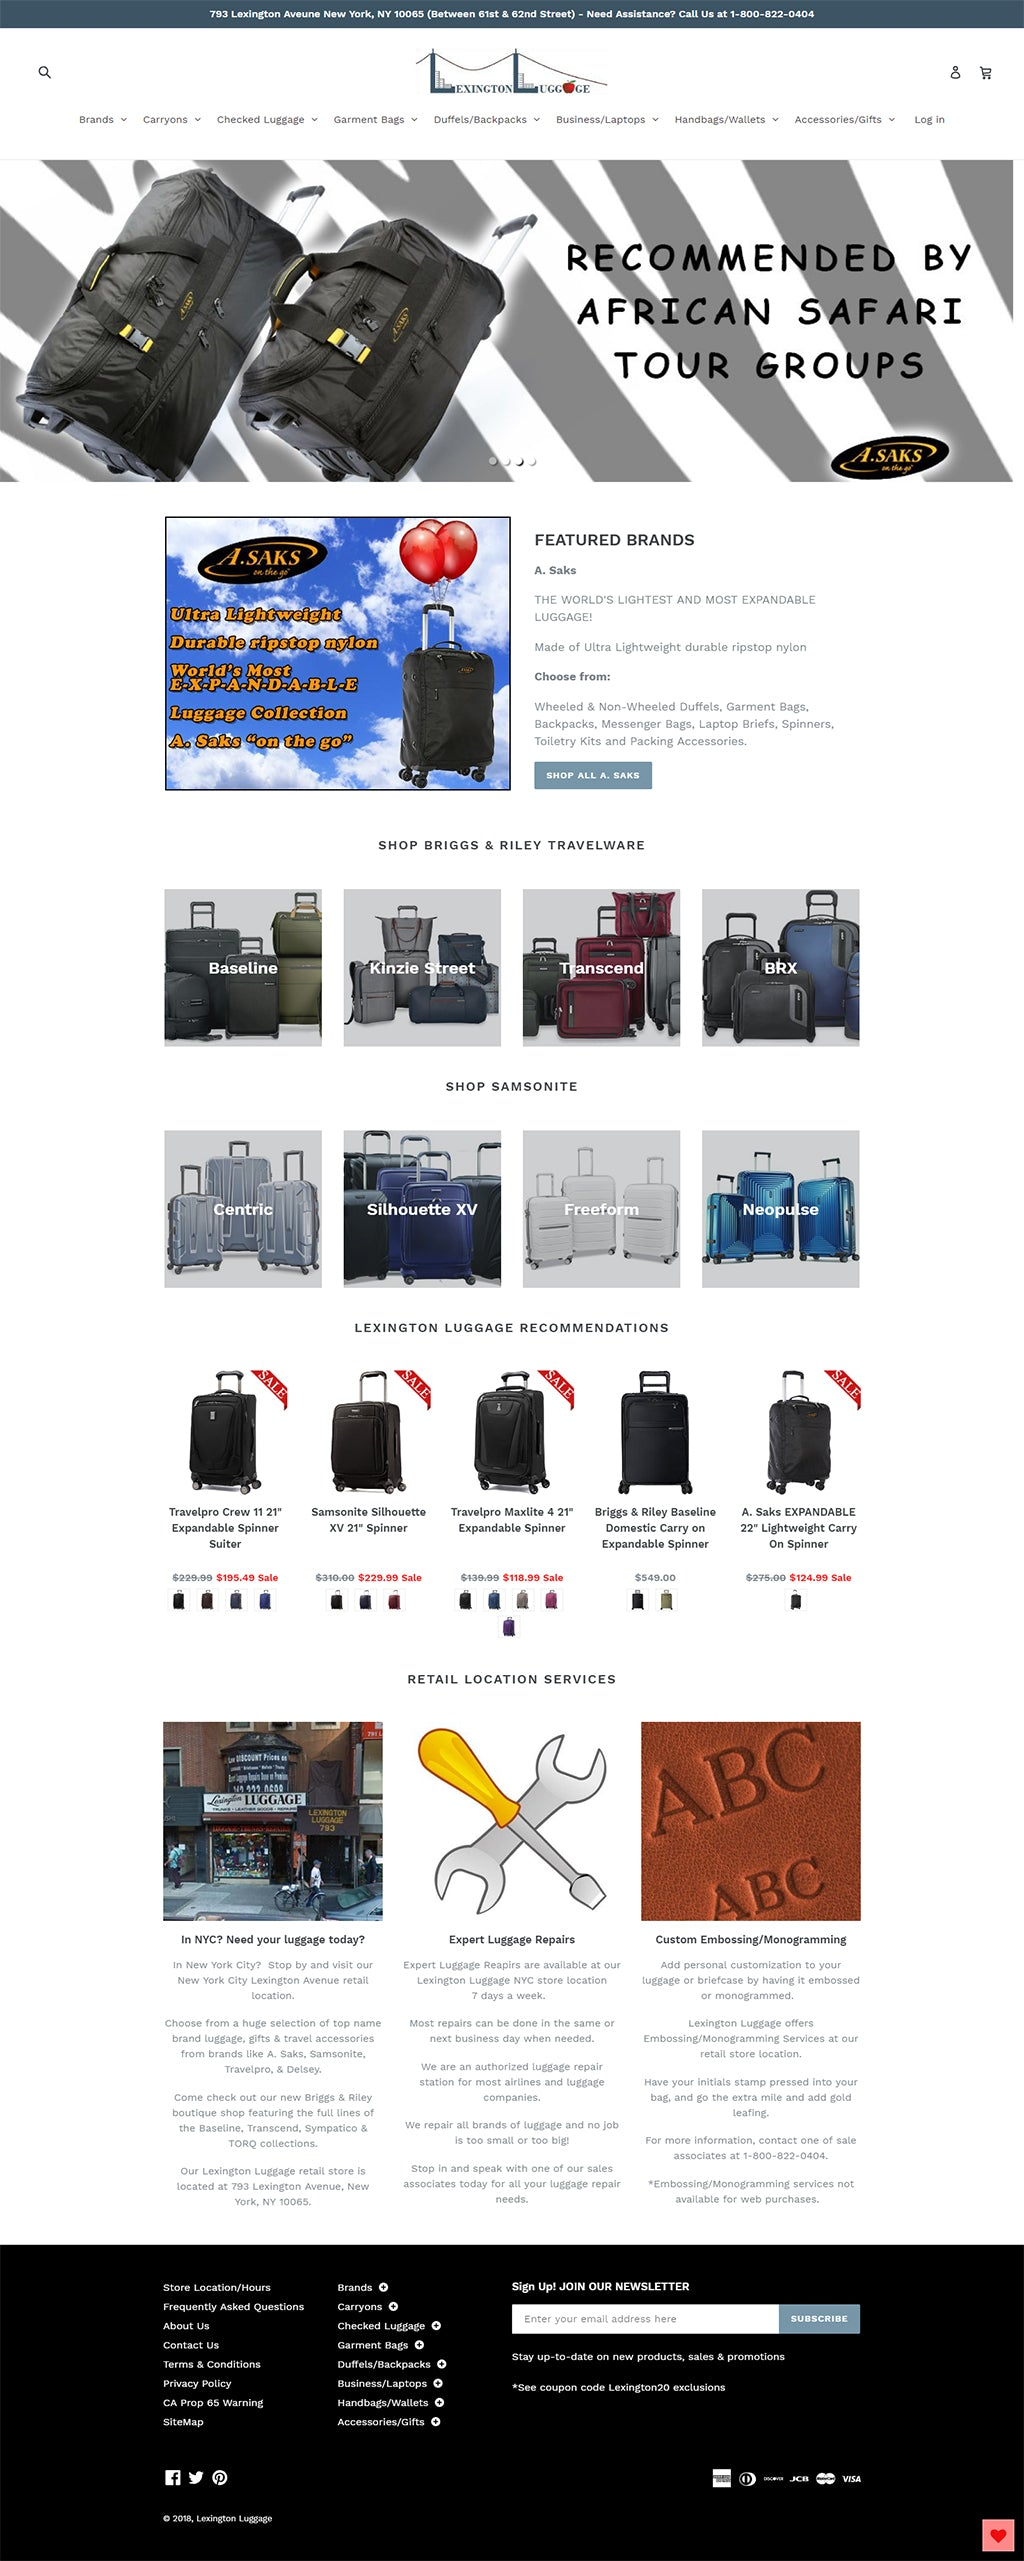 New LexingtonLuggage.com